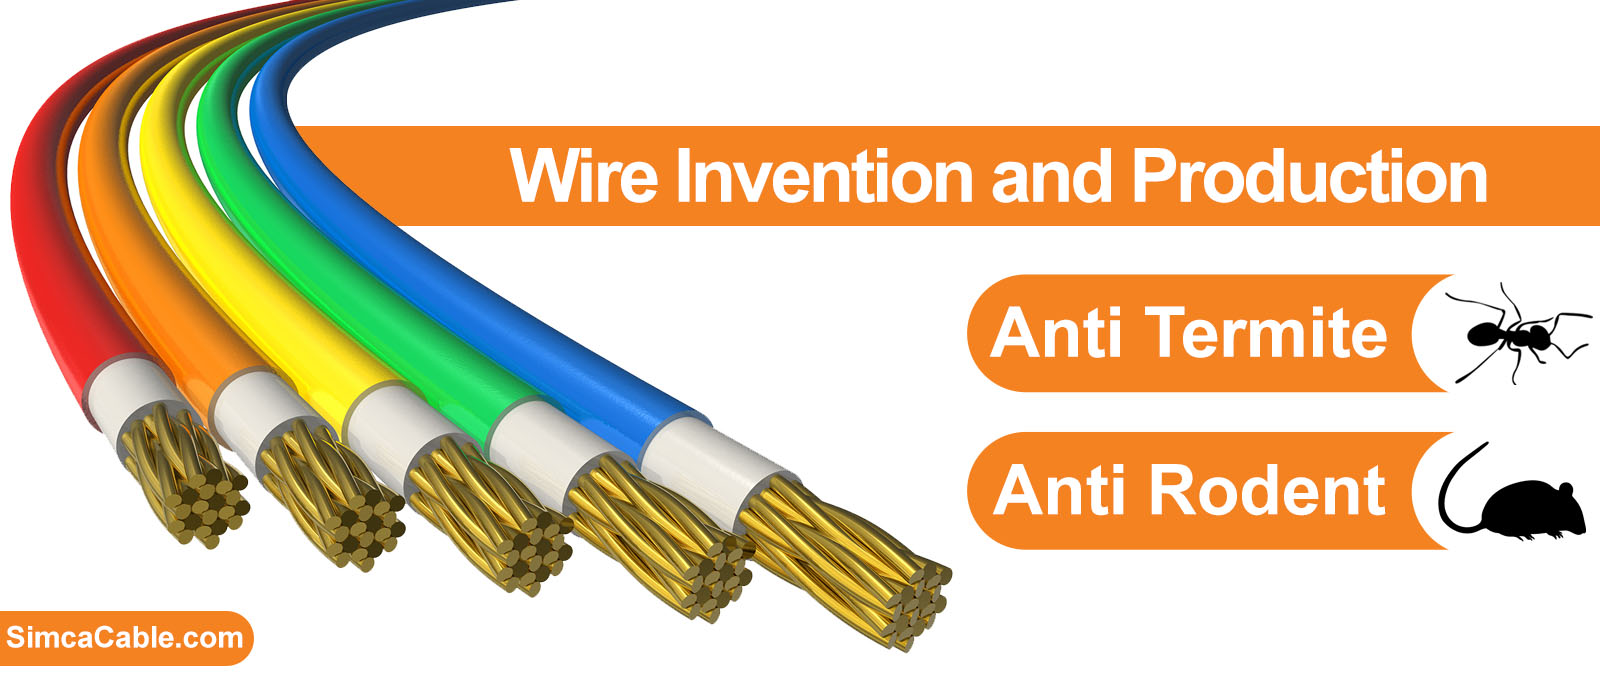 Invention and Production of Anti Termite and Anti Rodent Wire